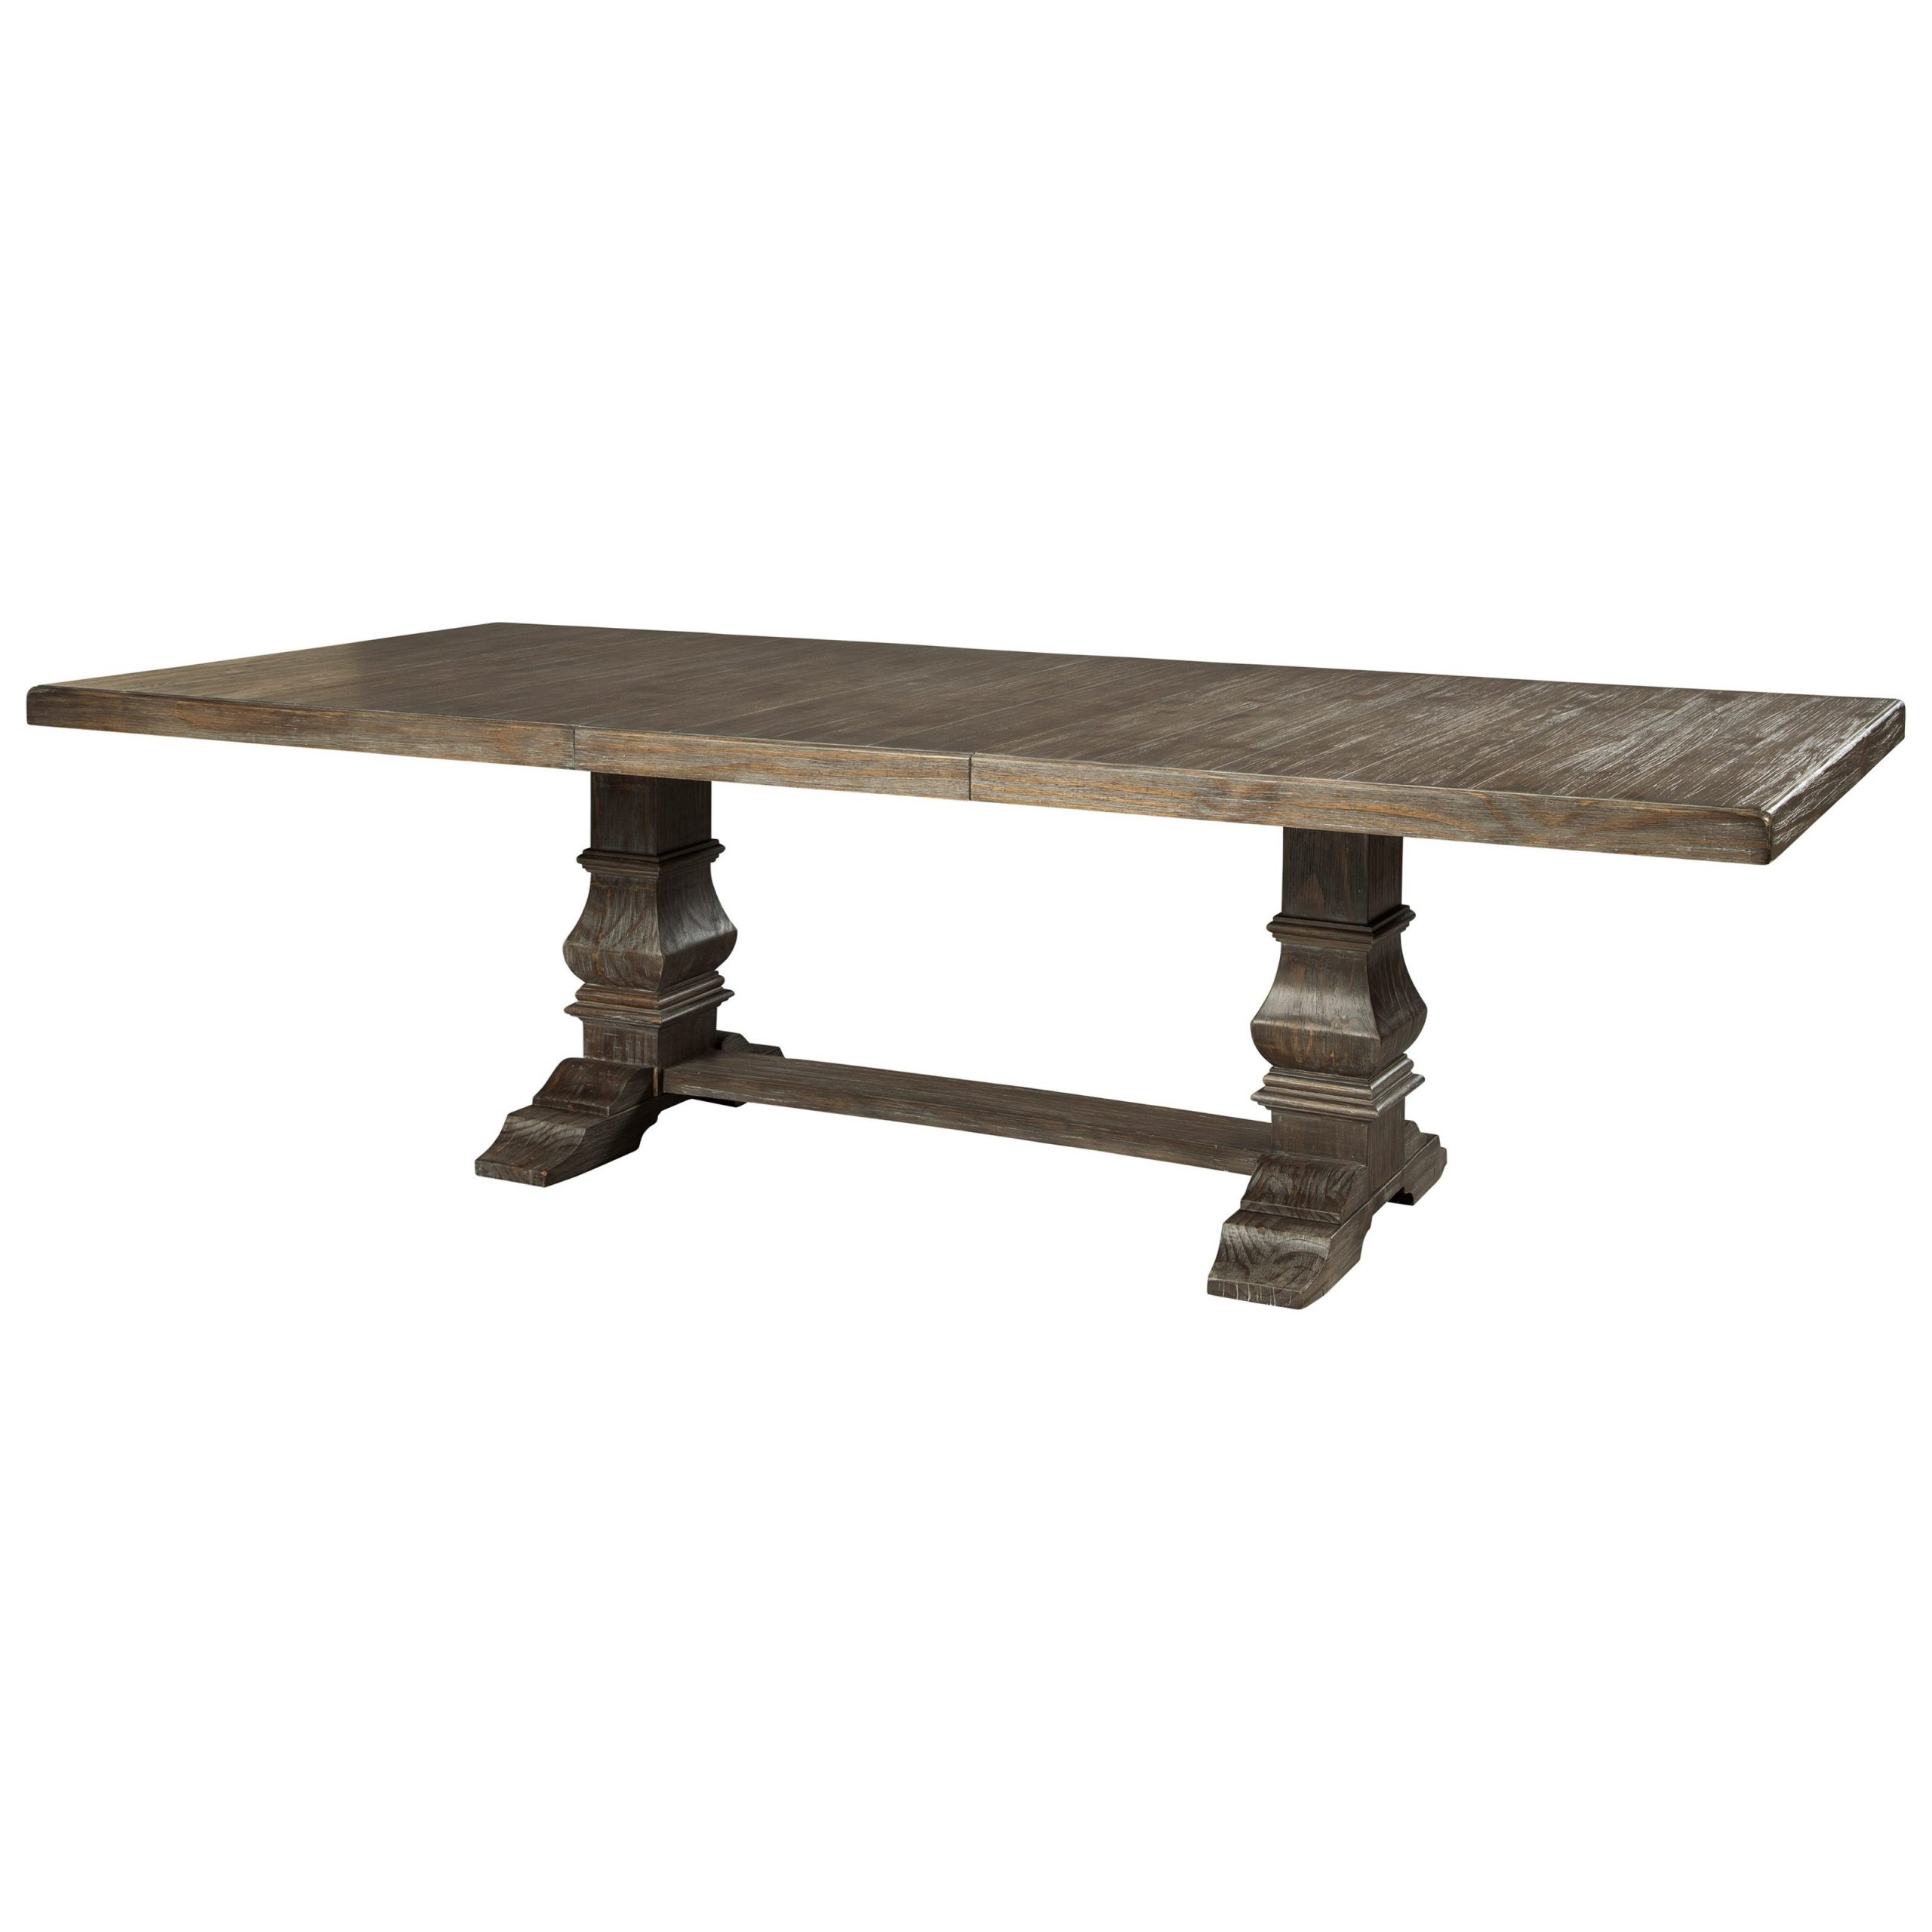 Van Hill for Wood Kitchen Dining Tables With Removable Center Leaf